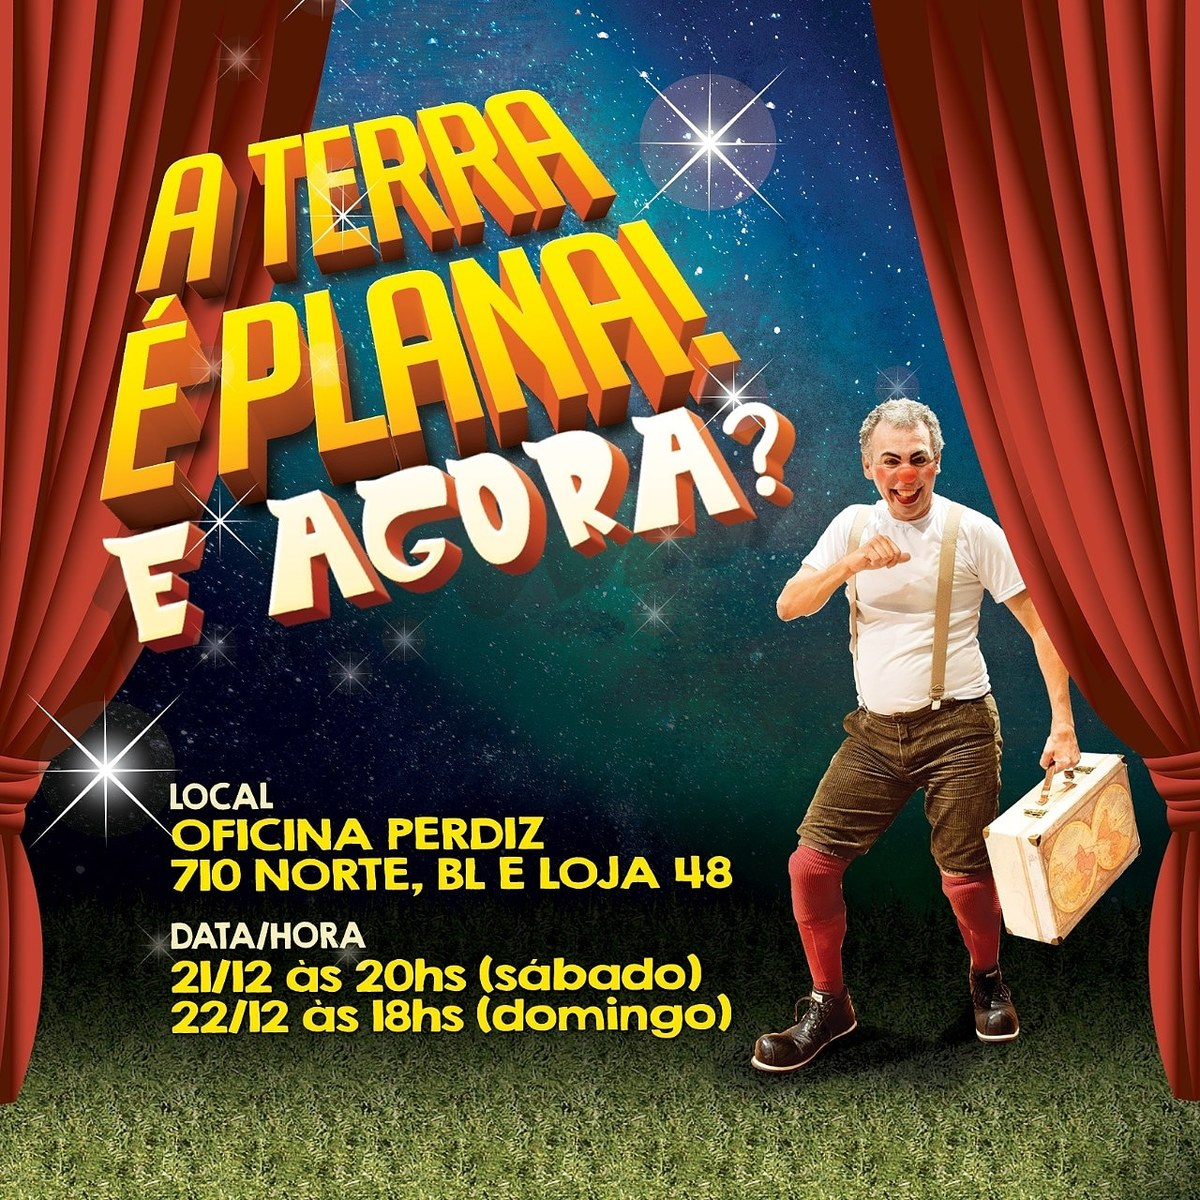 A terra eh plana! E agora?  The Earth is flat! And now? - Circus Events - CircusTalk